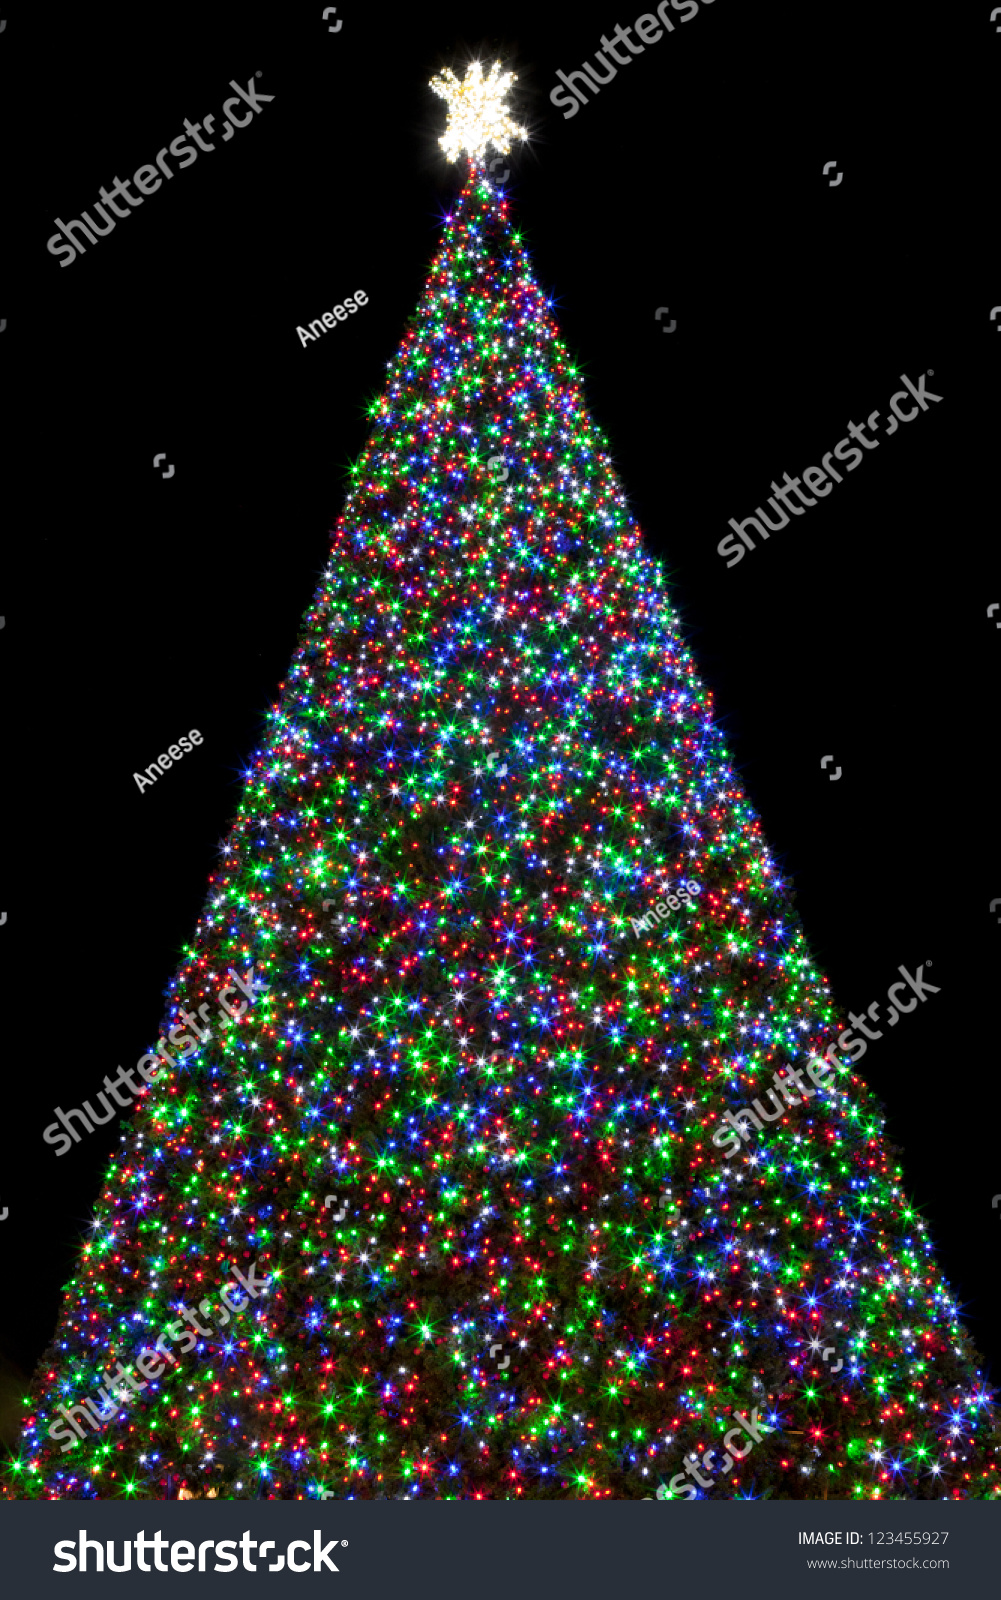 100 ft christmas tree covered with red green and blue lights at night - Christmas Tree With Blue Lights